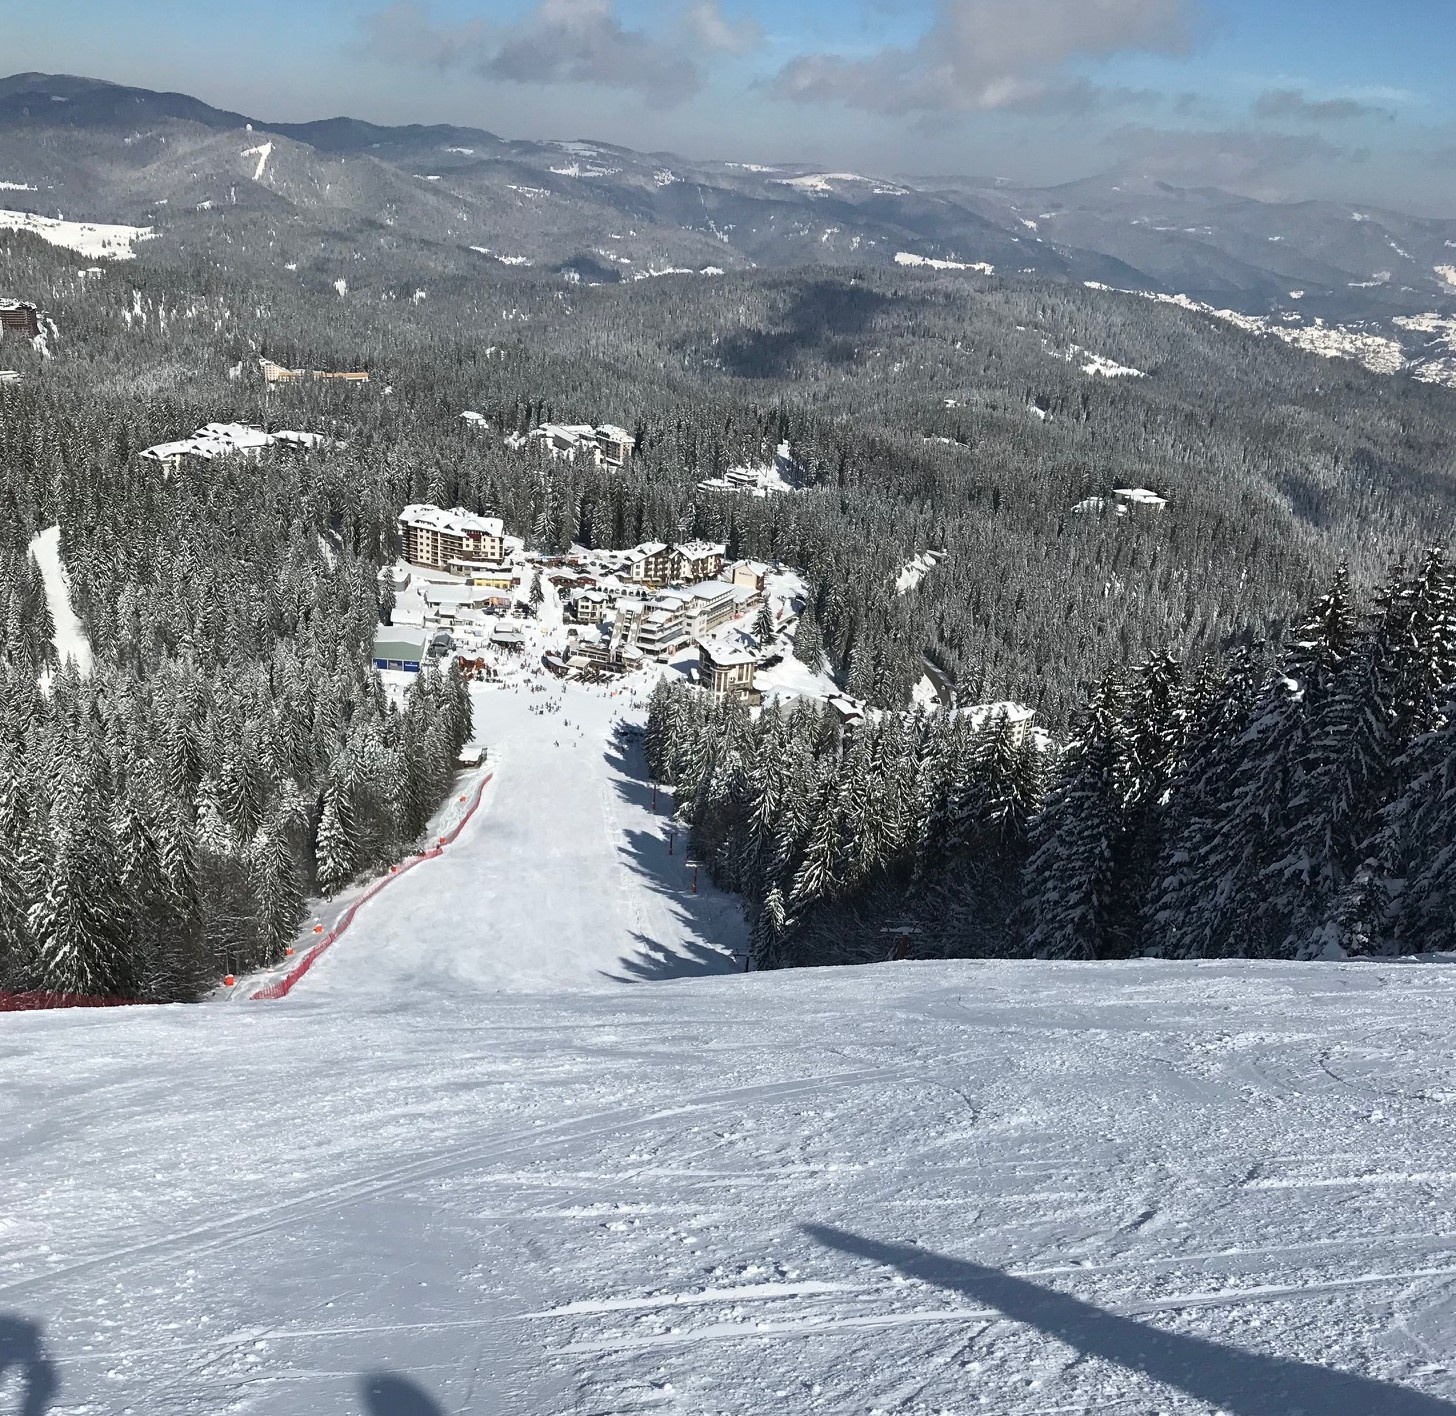 Looking down the demo slope in Pamporovo